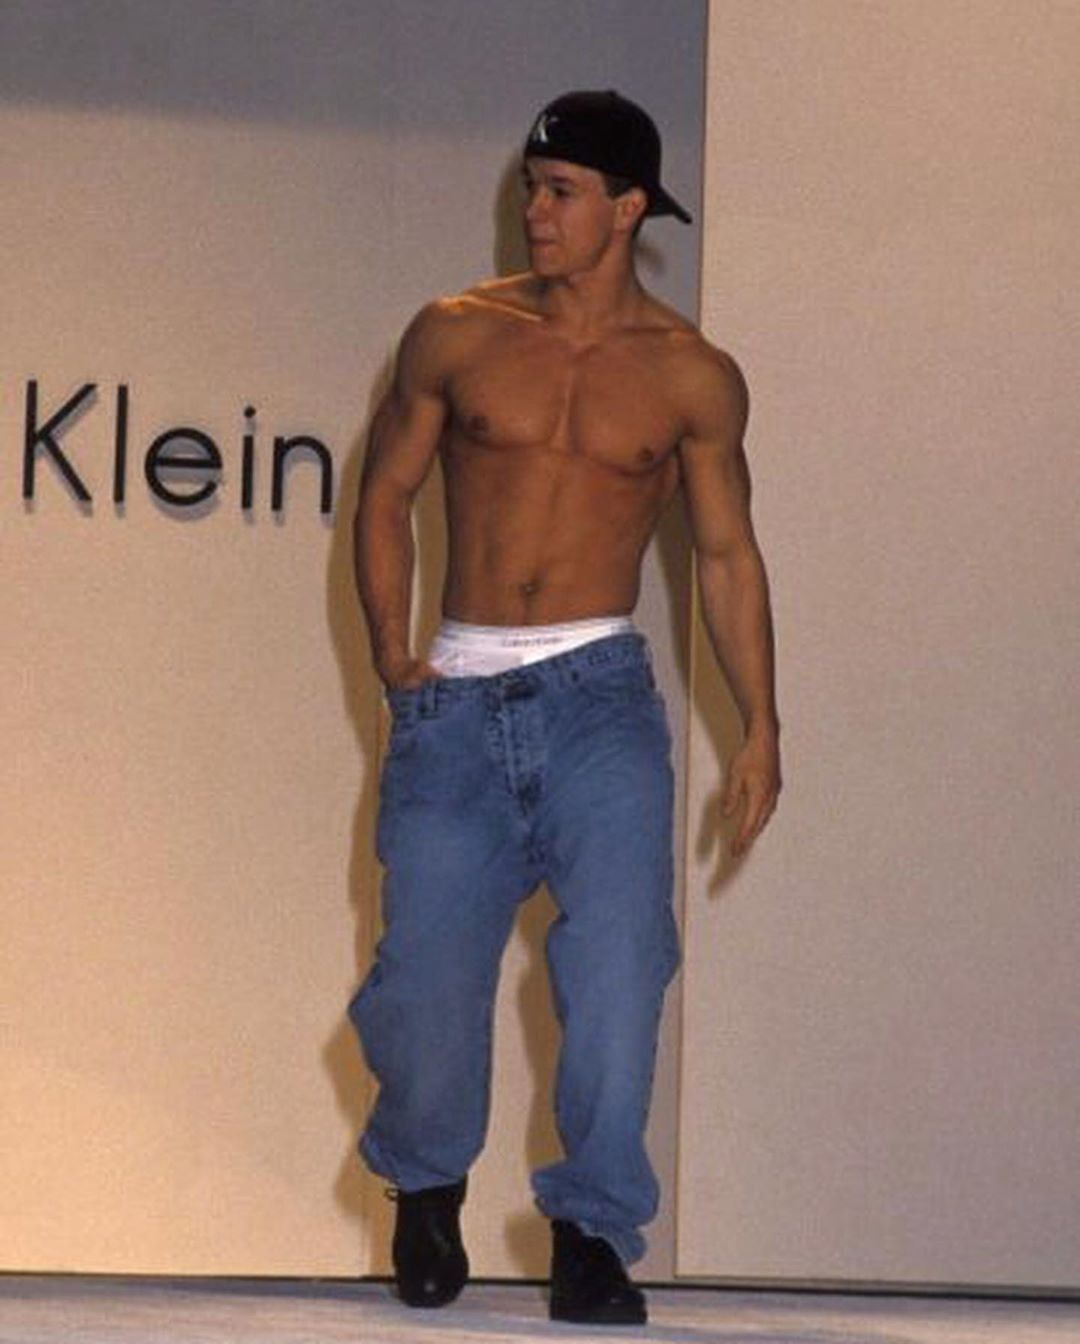 Mark Wahlberg Calvin Klein Model : wahlberg, calvin, klein, model, Wahlberg, Calvin, Klein, Runway, Klein,, Young,